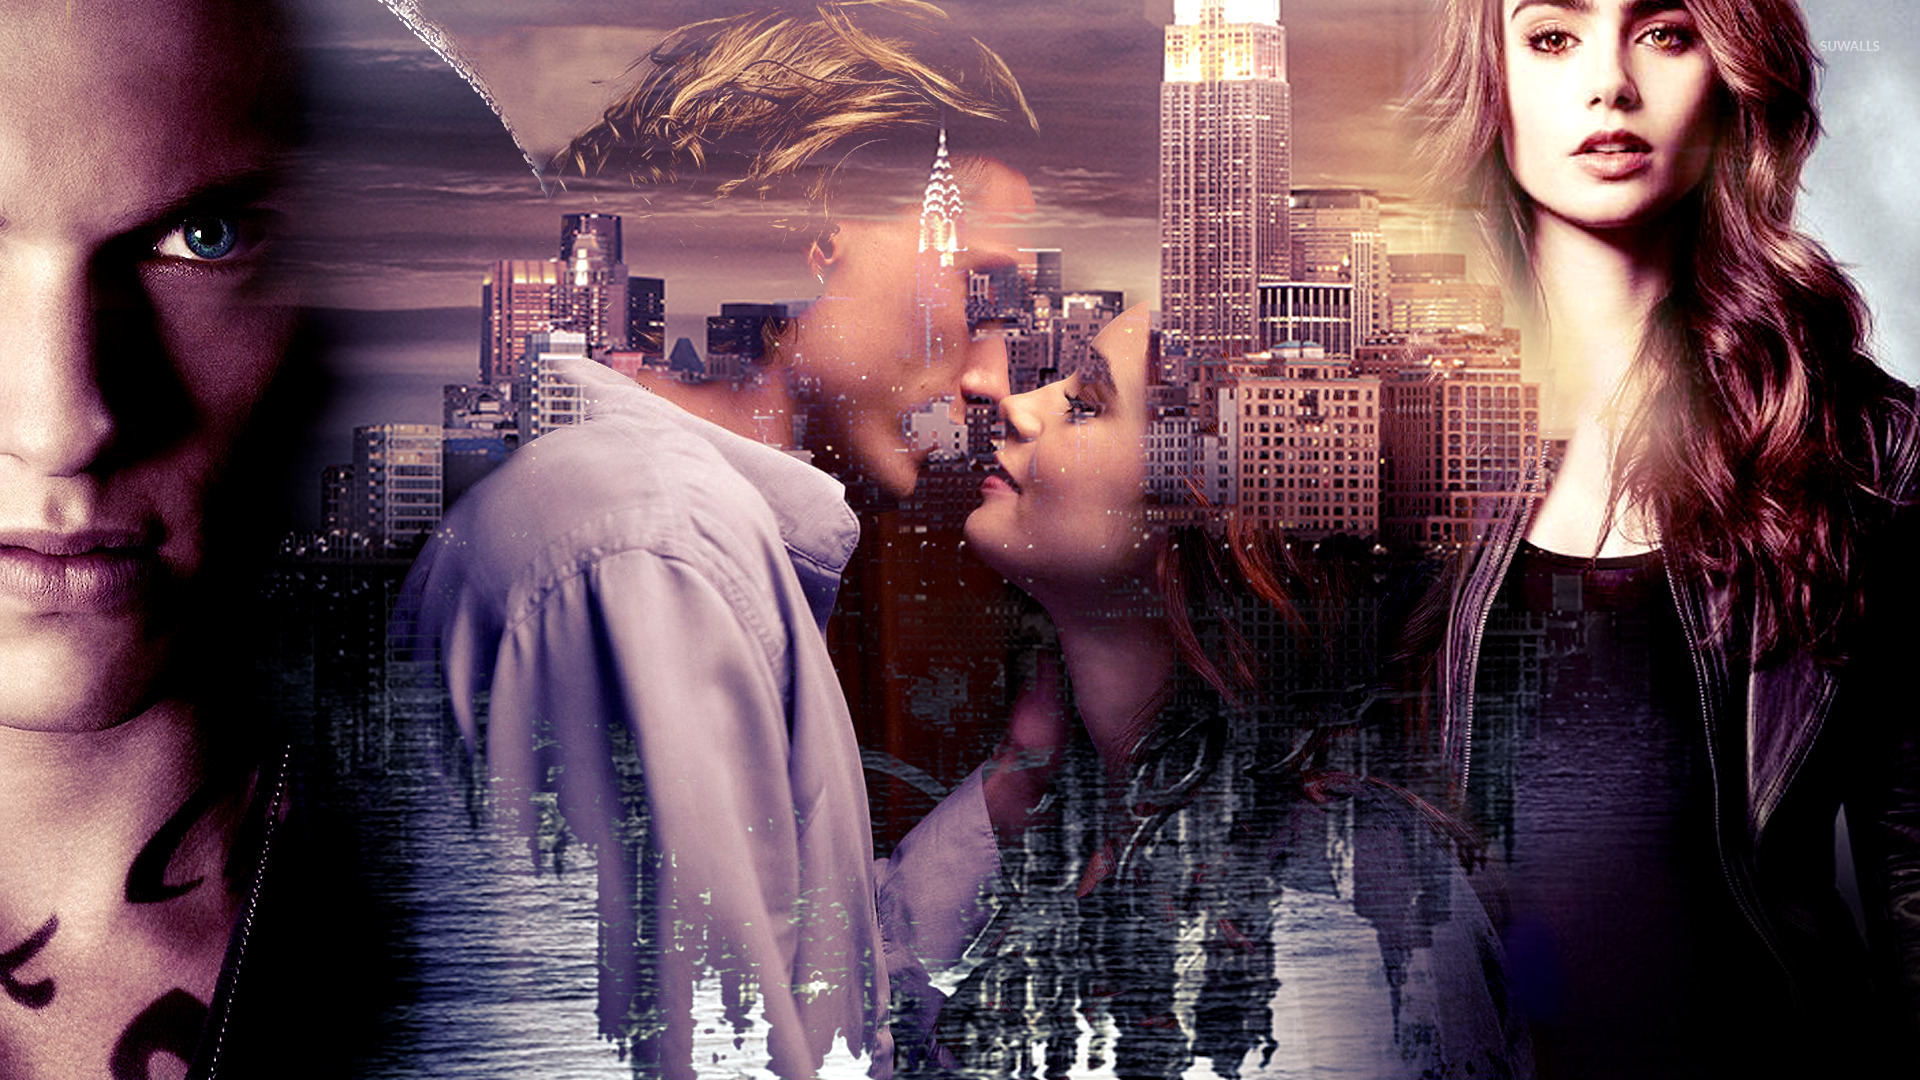 Clary and Jace - The Mortal Instruments: City of Bones ...